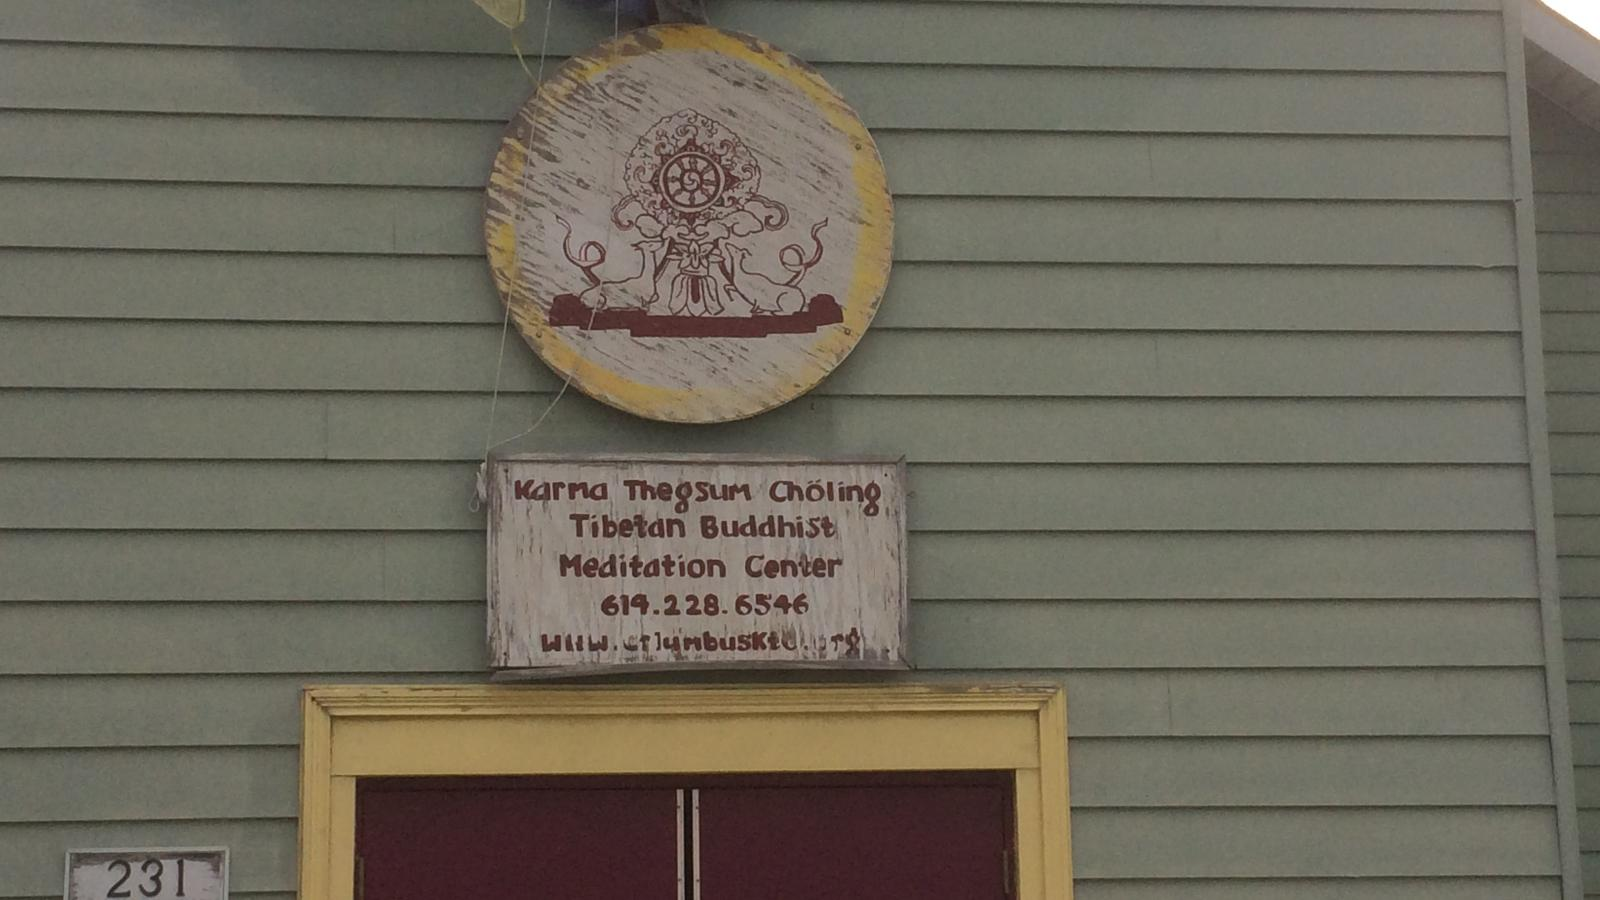 Karma Thegsum Choling Meditation Center entrance